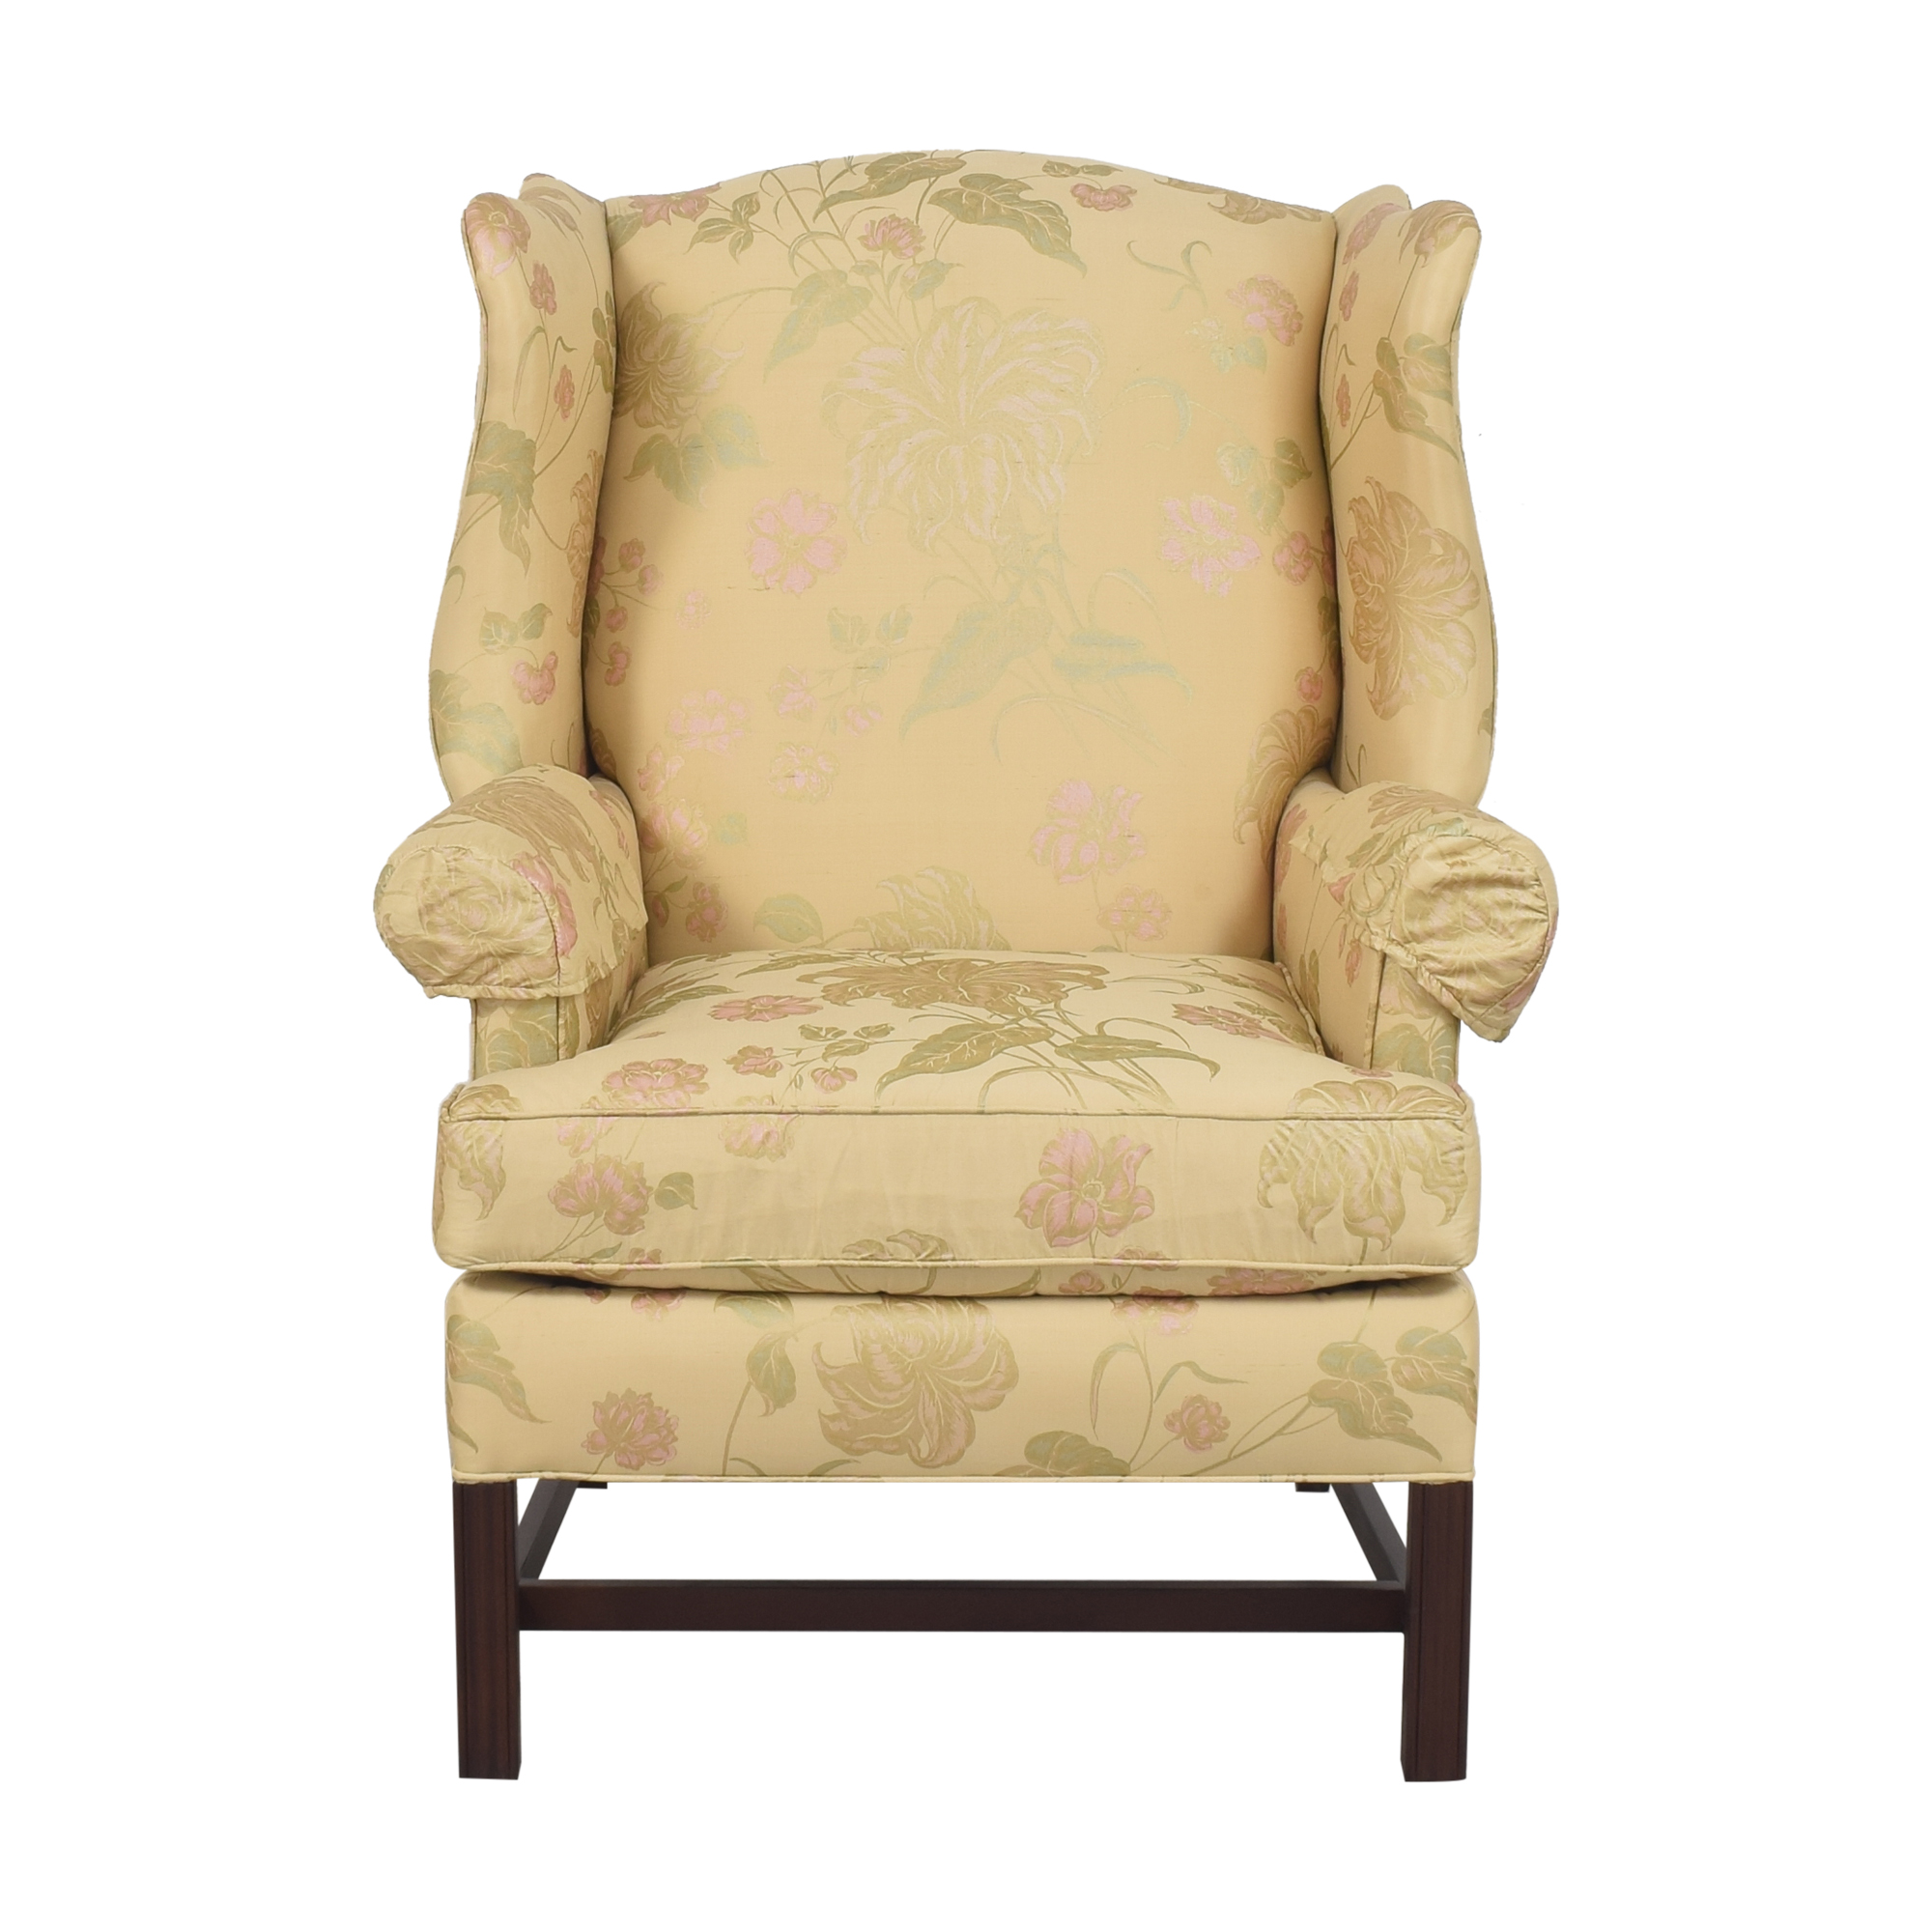 shop CR Laine Upholstered Accent Chair CR Laine Chairs